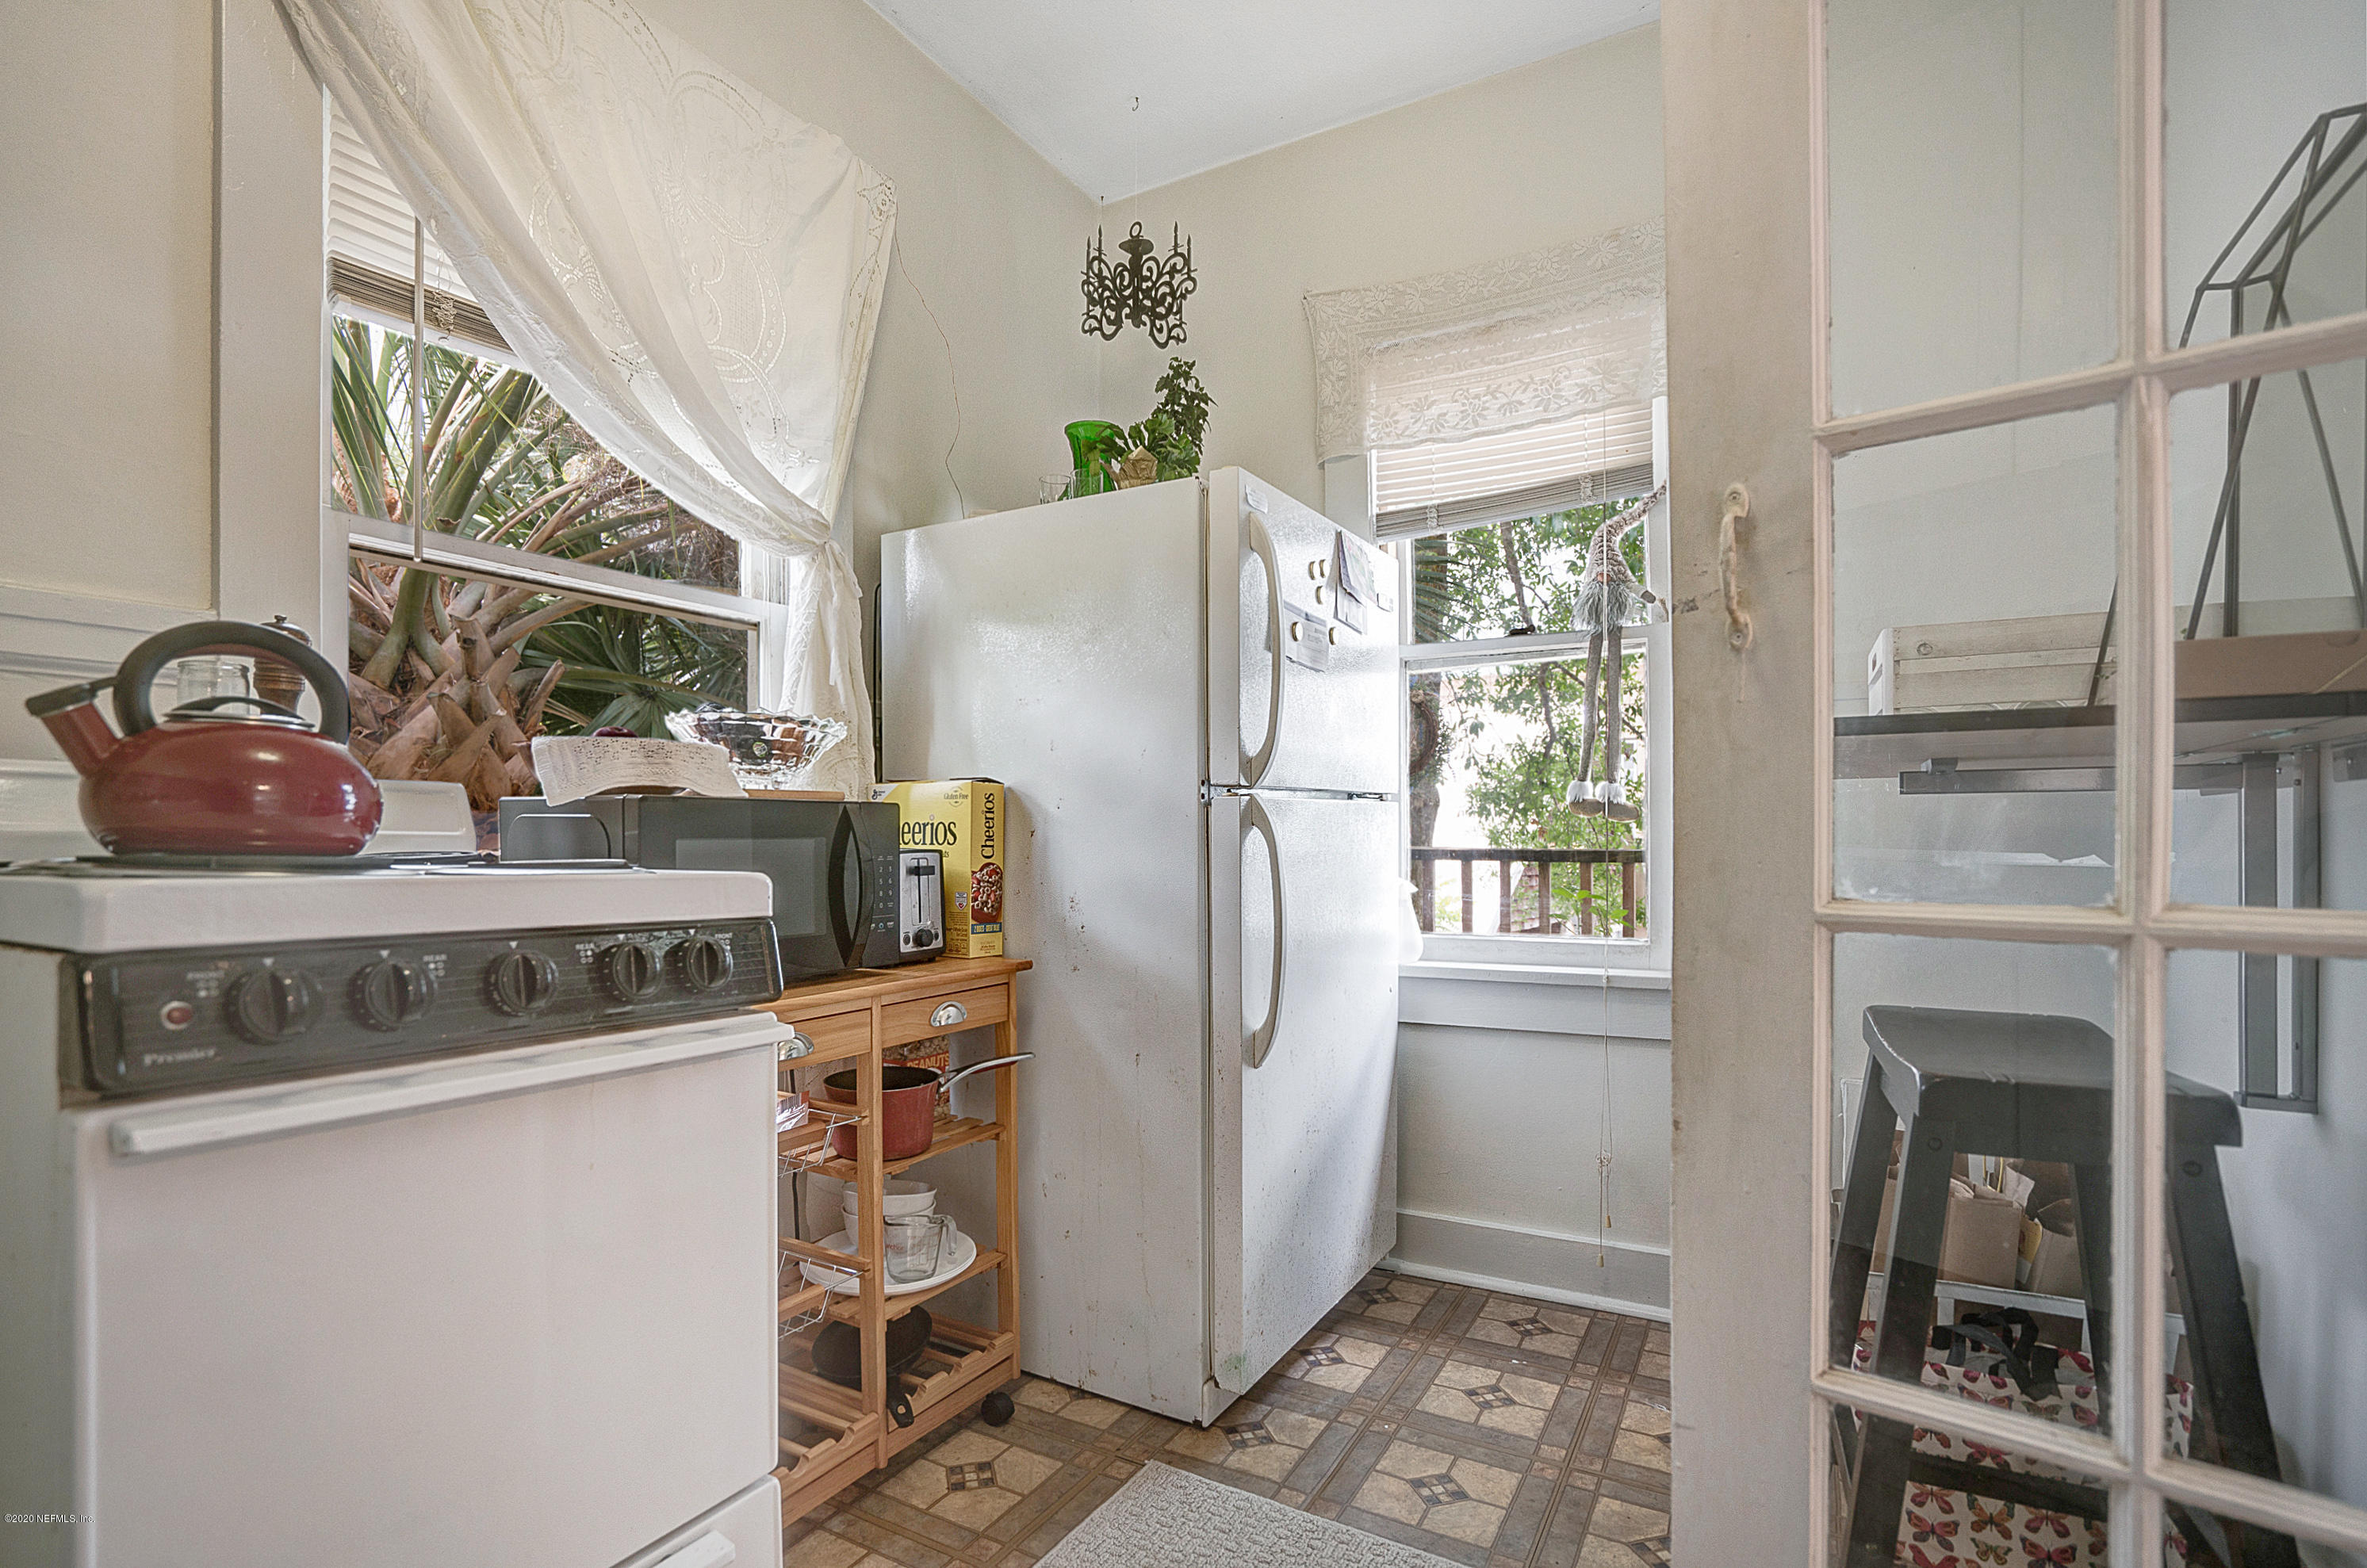 313 ST GEORGE ST + DUPLEX, ST AUGUSTINE, FLORIDA 32084, 3 Bedrooms Bedrooms, ,3 BathroomsBathrooms,Residential,For sale,ST GEORGE ST + DUPLEX,1080499